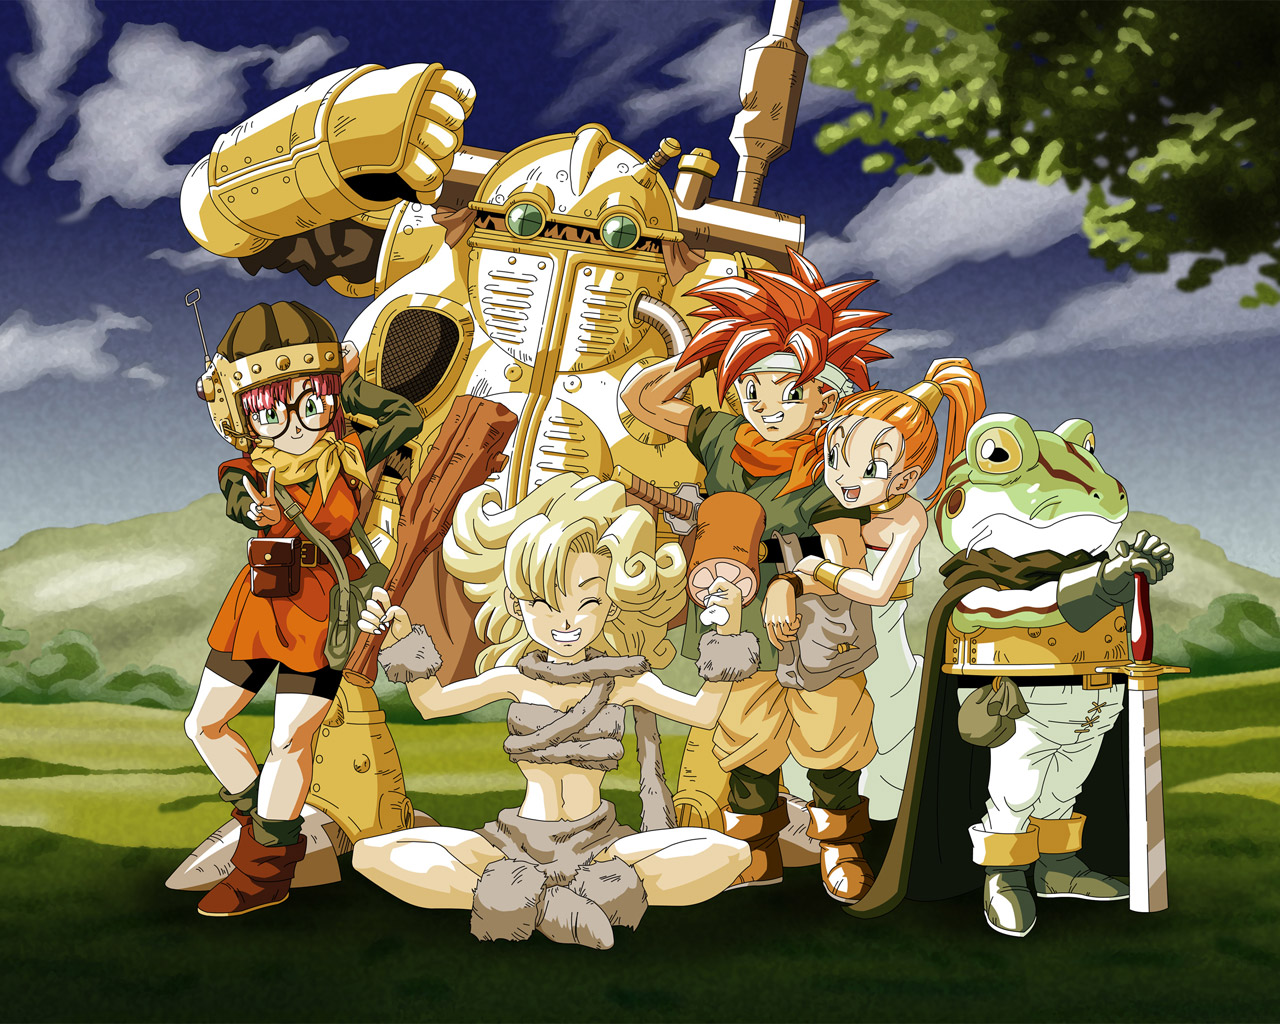 Free Chrono Trigger Wallpaper in 1280x1024